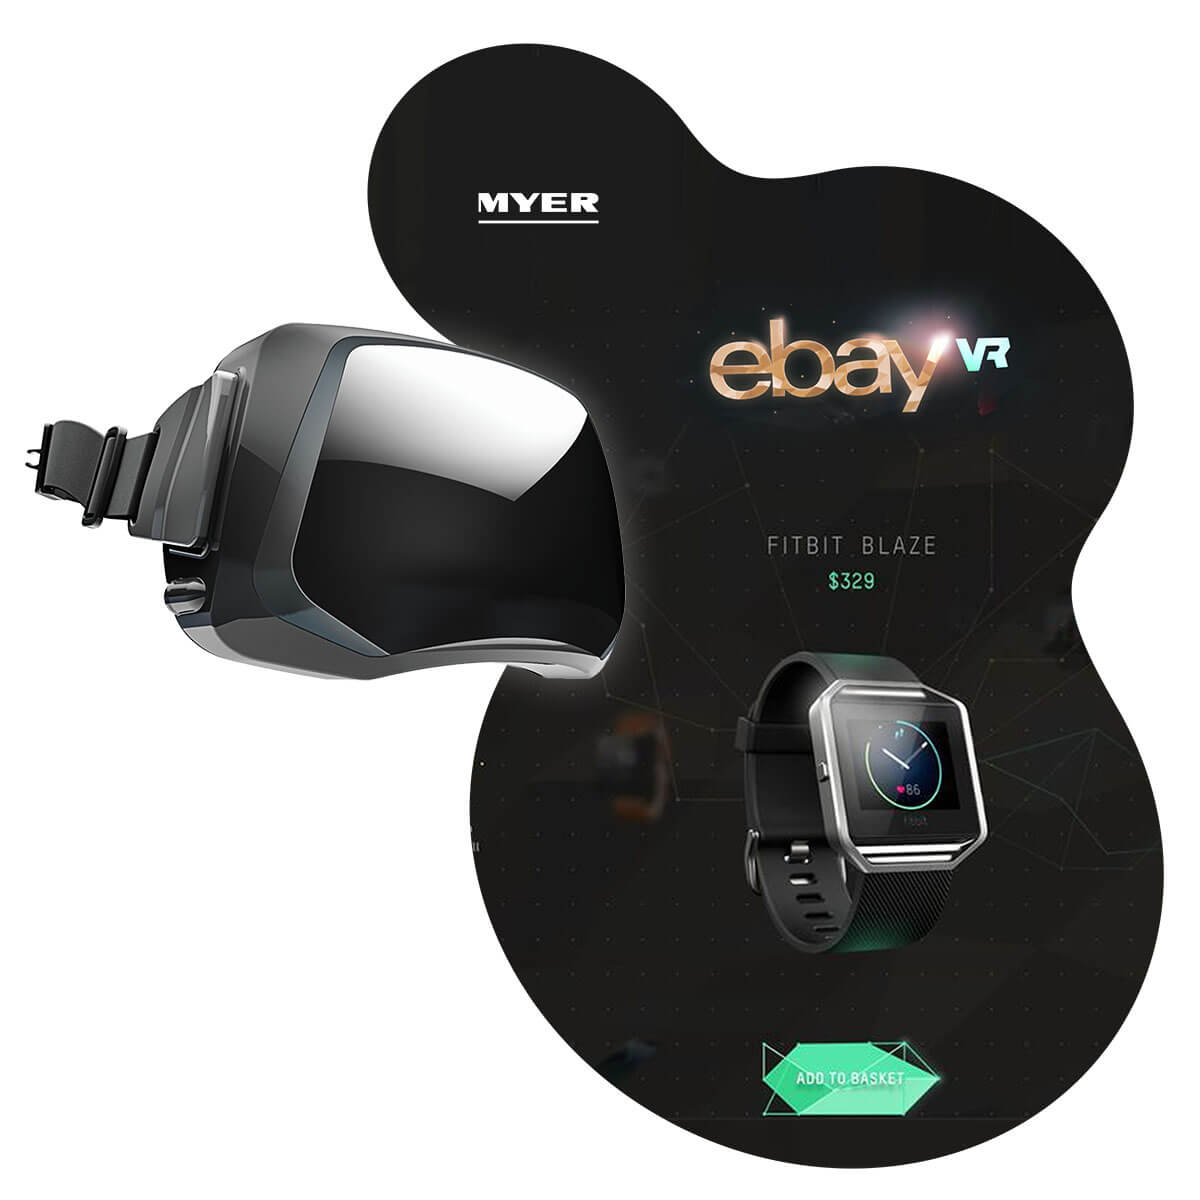 A mockup of eBay VR - the world's first virtual reality department store.